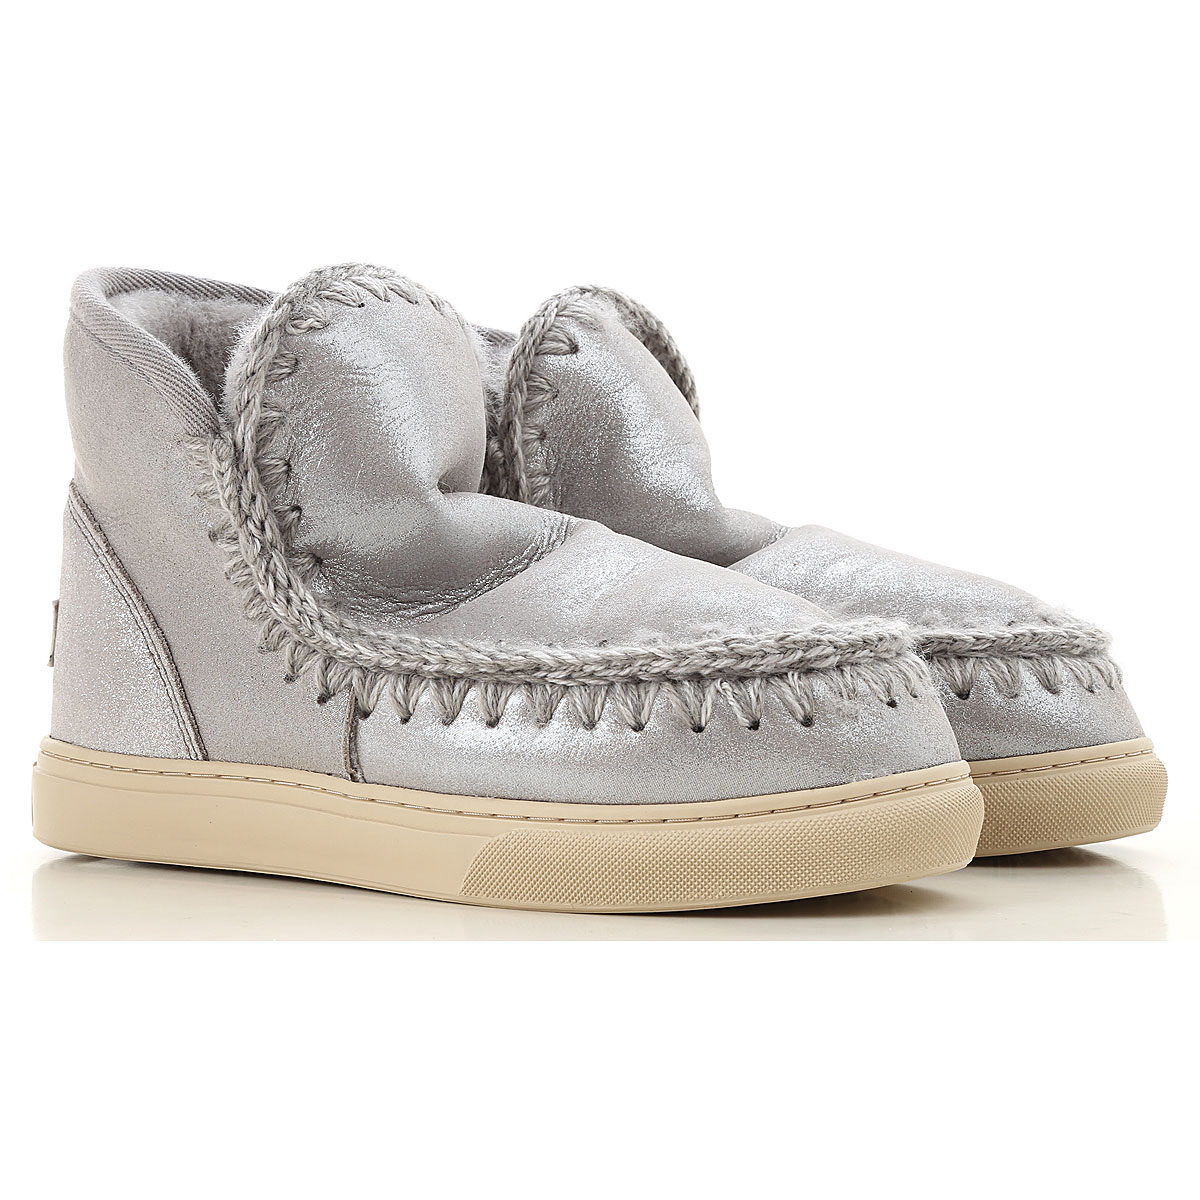 Image of Mou Boots for Women, Booties, Silver, Suede leather, 2017, EUR 36 - UK 3 - USA 5.5 EUR 37 - UK 4 - USA 6.5 EUR 38 - UK 5 - USA 7.5 EUR 39 - UK 6 - USA 8.5 EUR 40 - UK 7 - USA 9.5